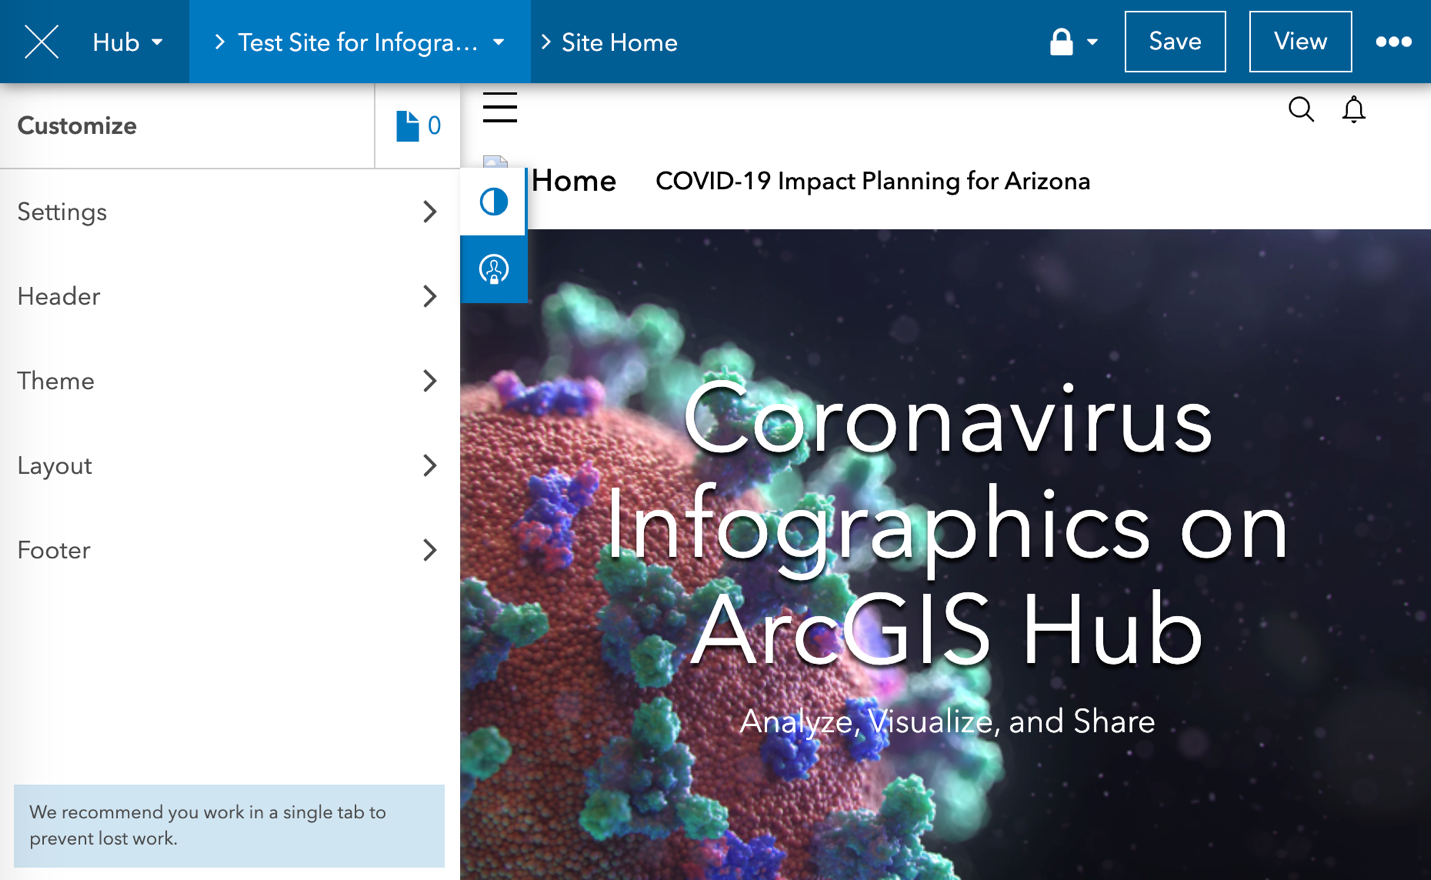 An ArcGIS Hub site featuring an infographic